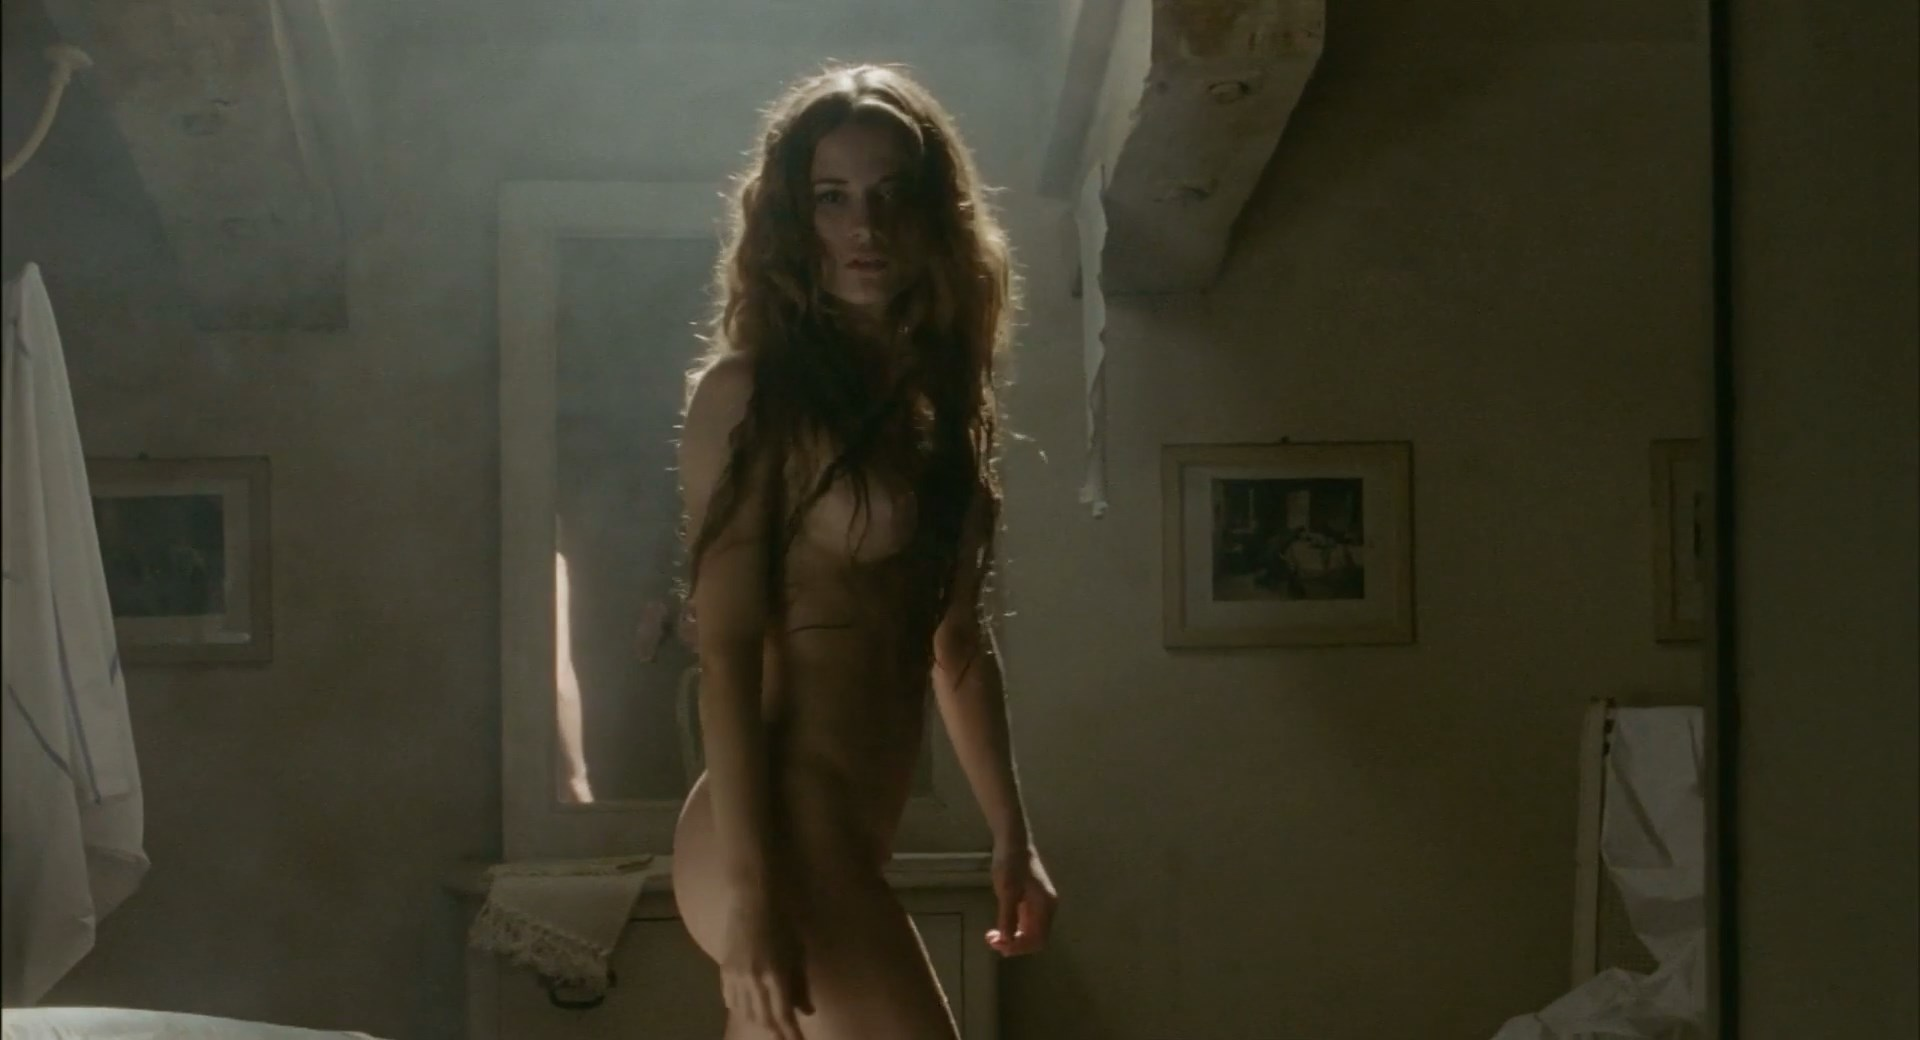 Giulia Gorietti Nude giulia gorietti nude » nudecelebvideo - your box of nude